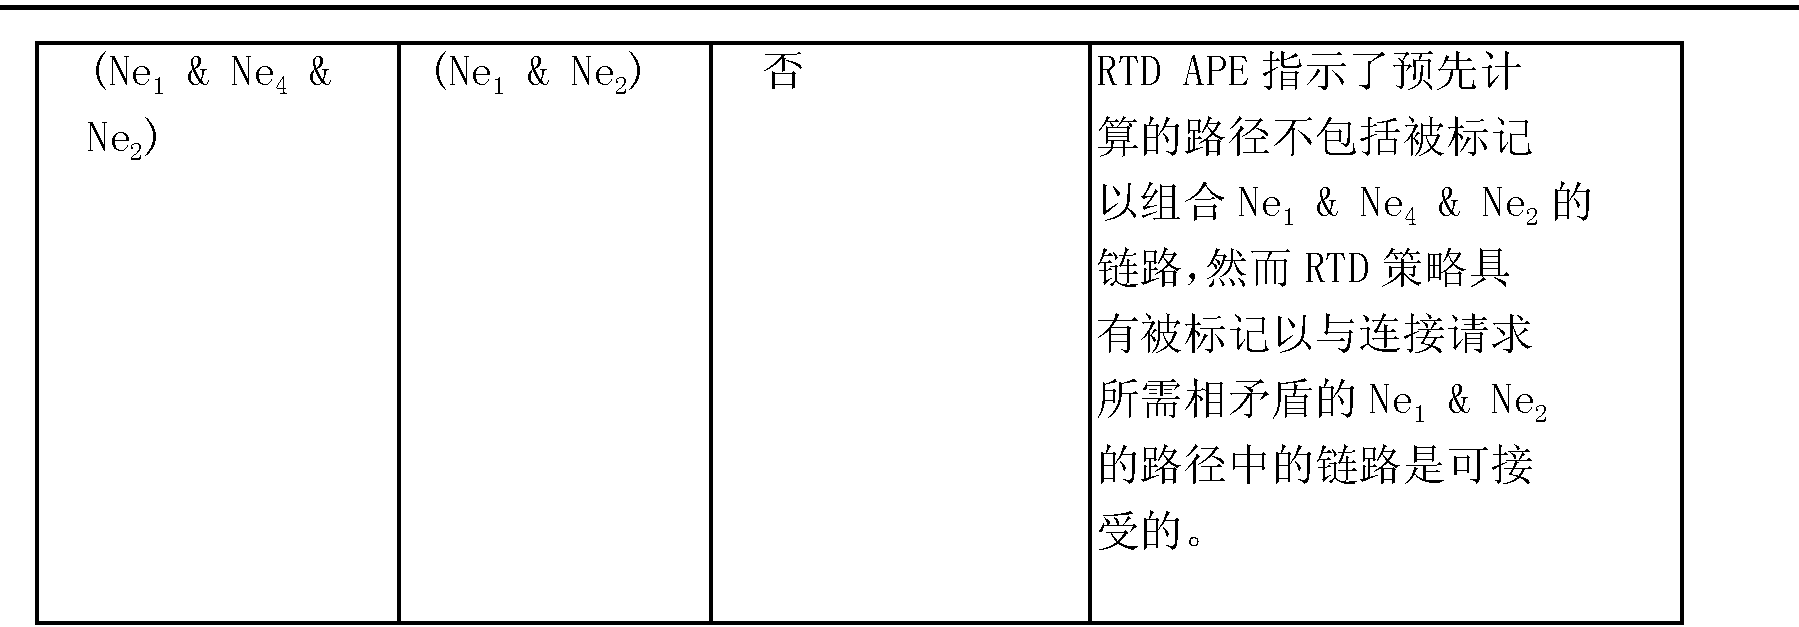 CN1805409B System And Method For Identifying Pre